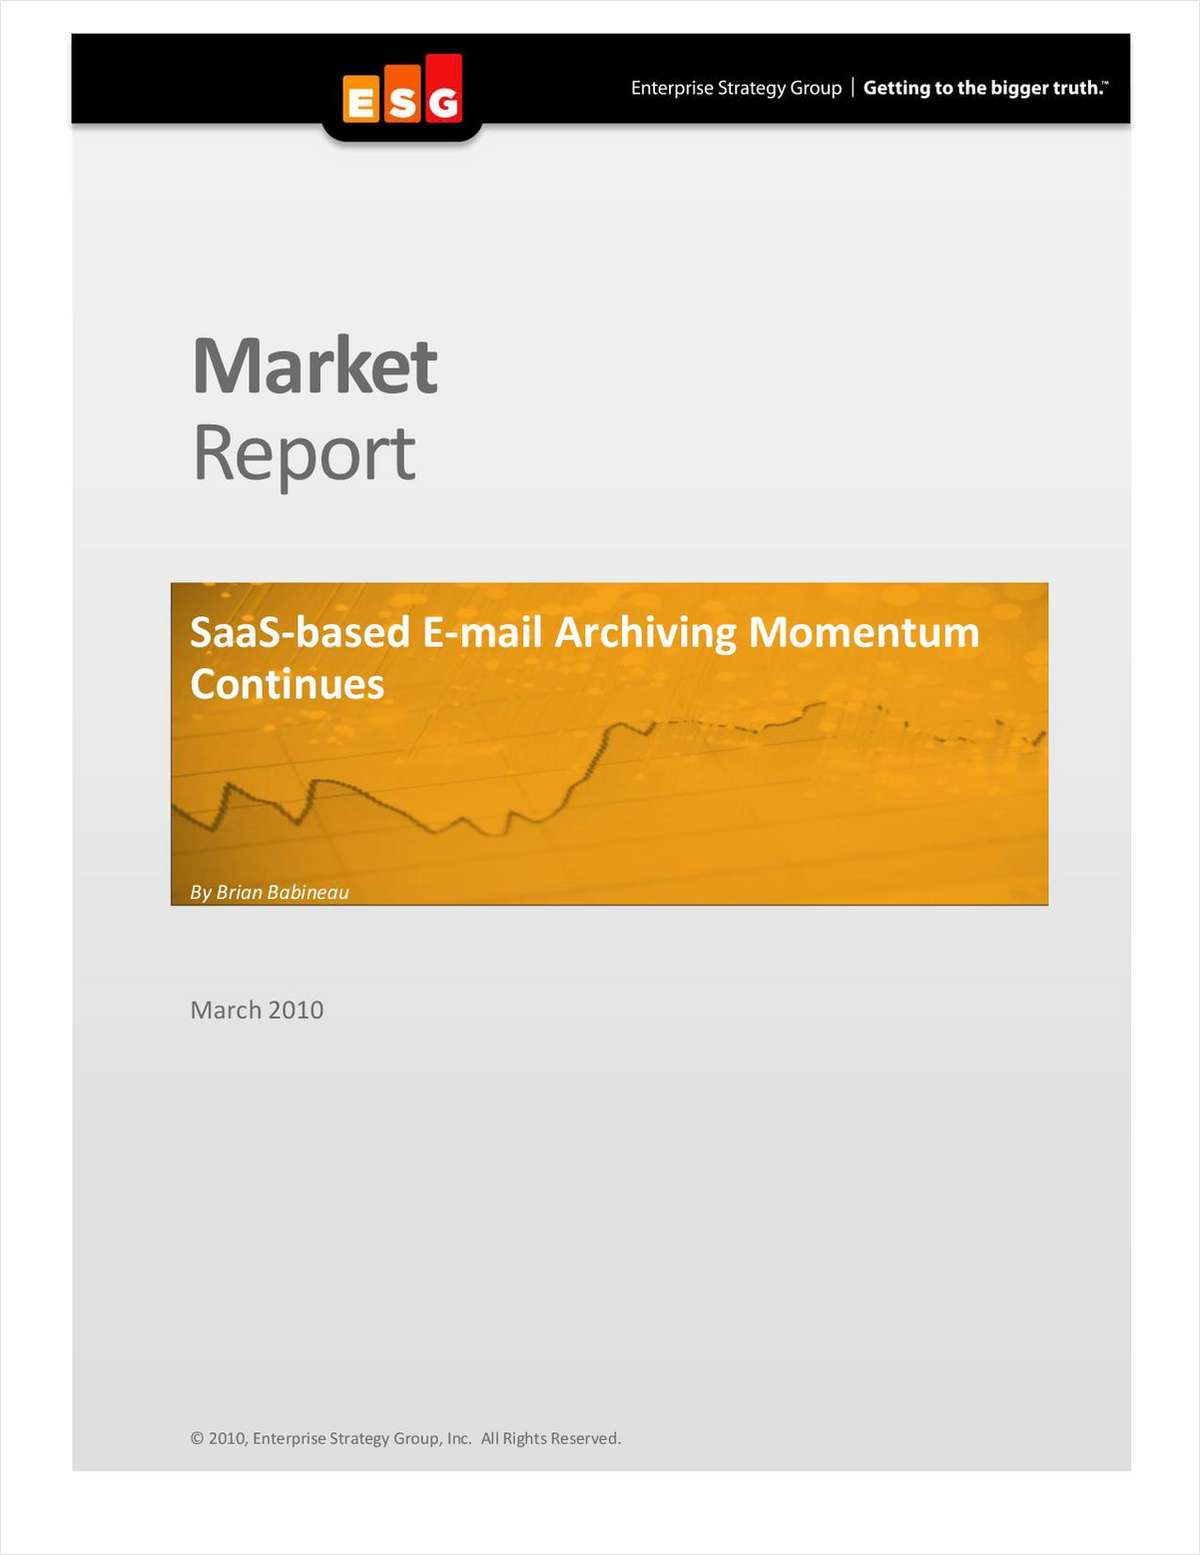 Enterprise Strategy Group Report on SaaS Archiving